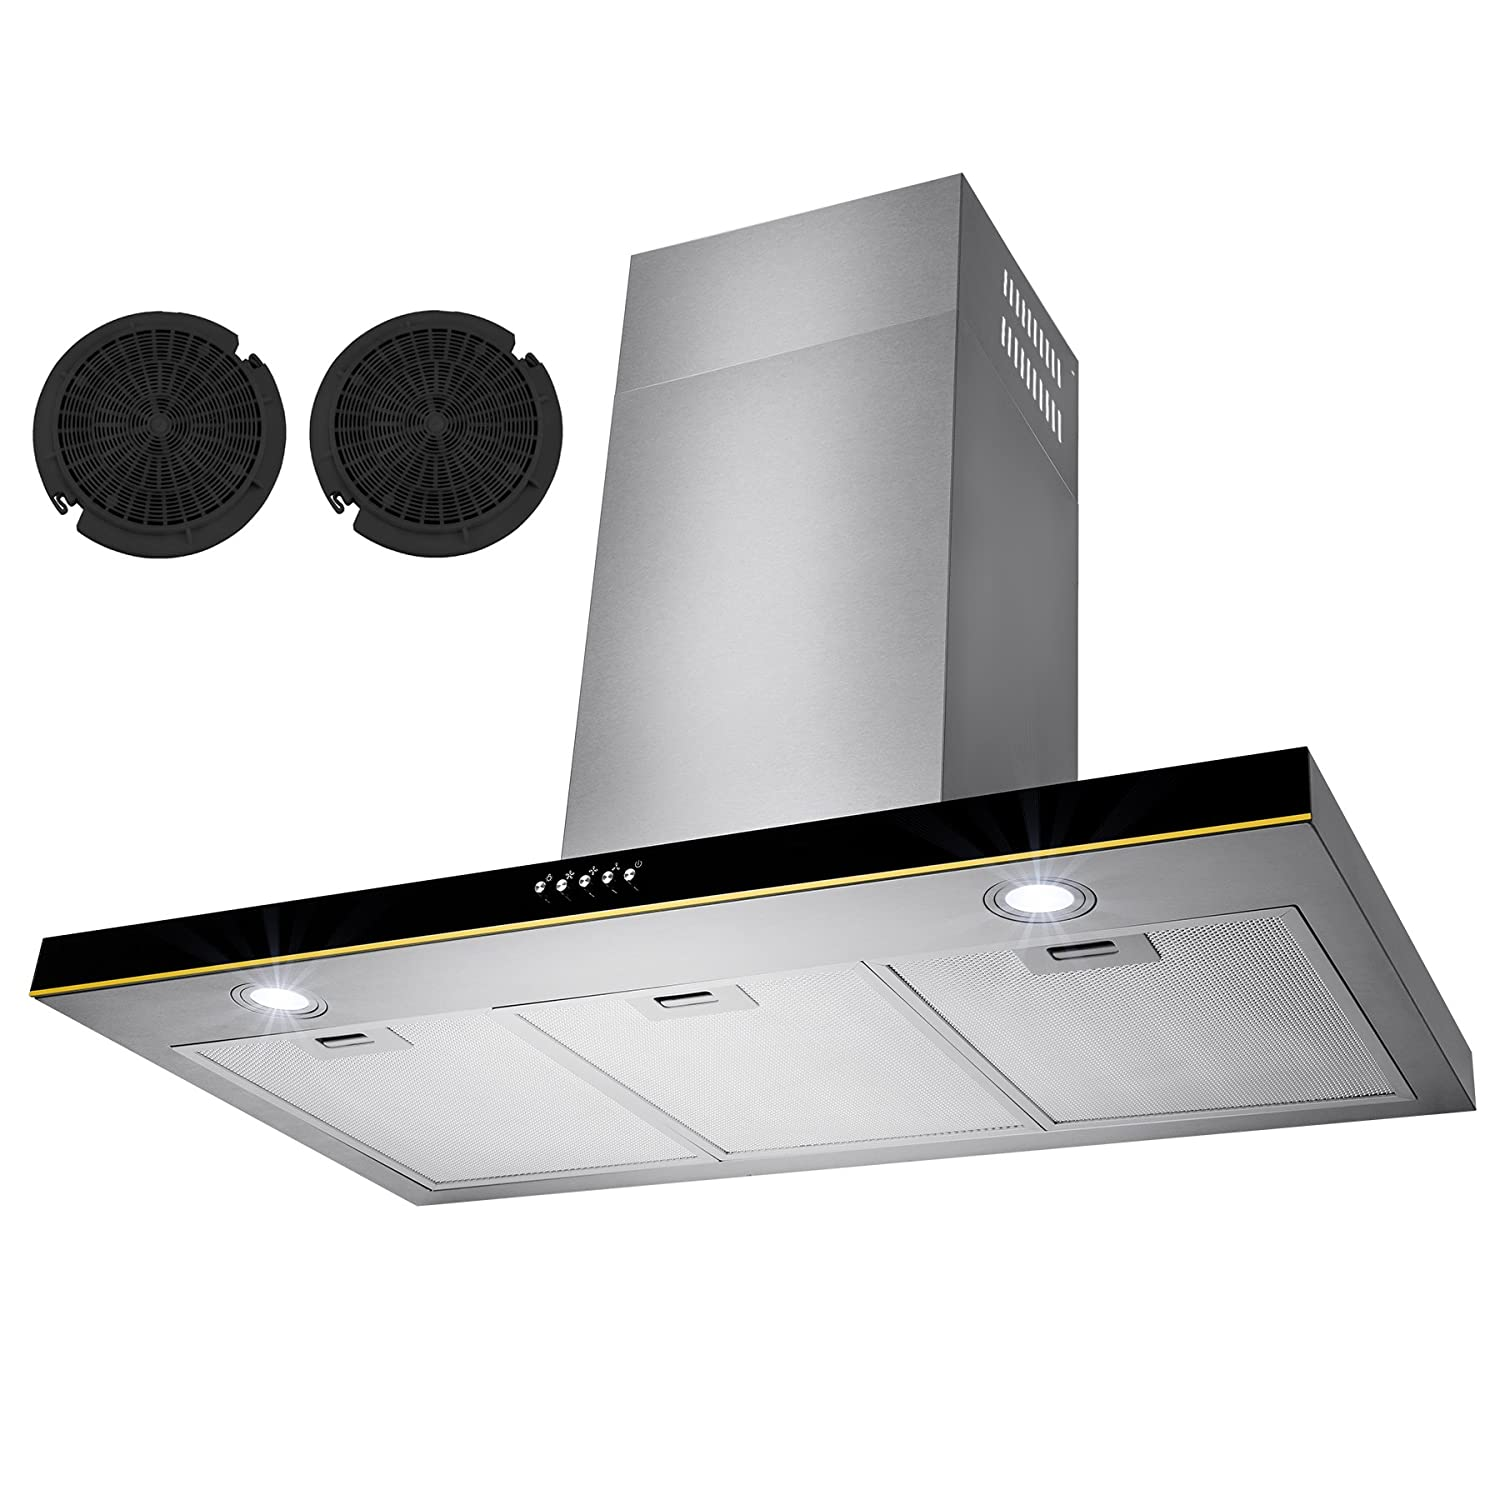 "Golden Vantage 36"" Stainless Steel Wall Mount Range Hood Control Light Lamp Kitchen Vents GV-RH0189"